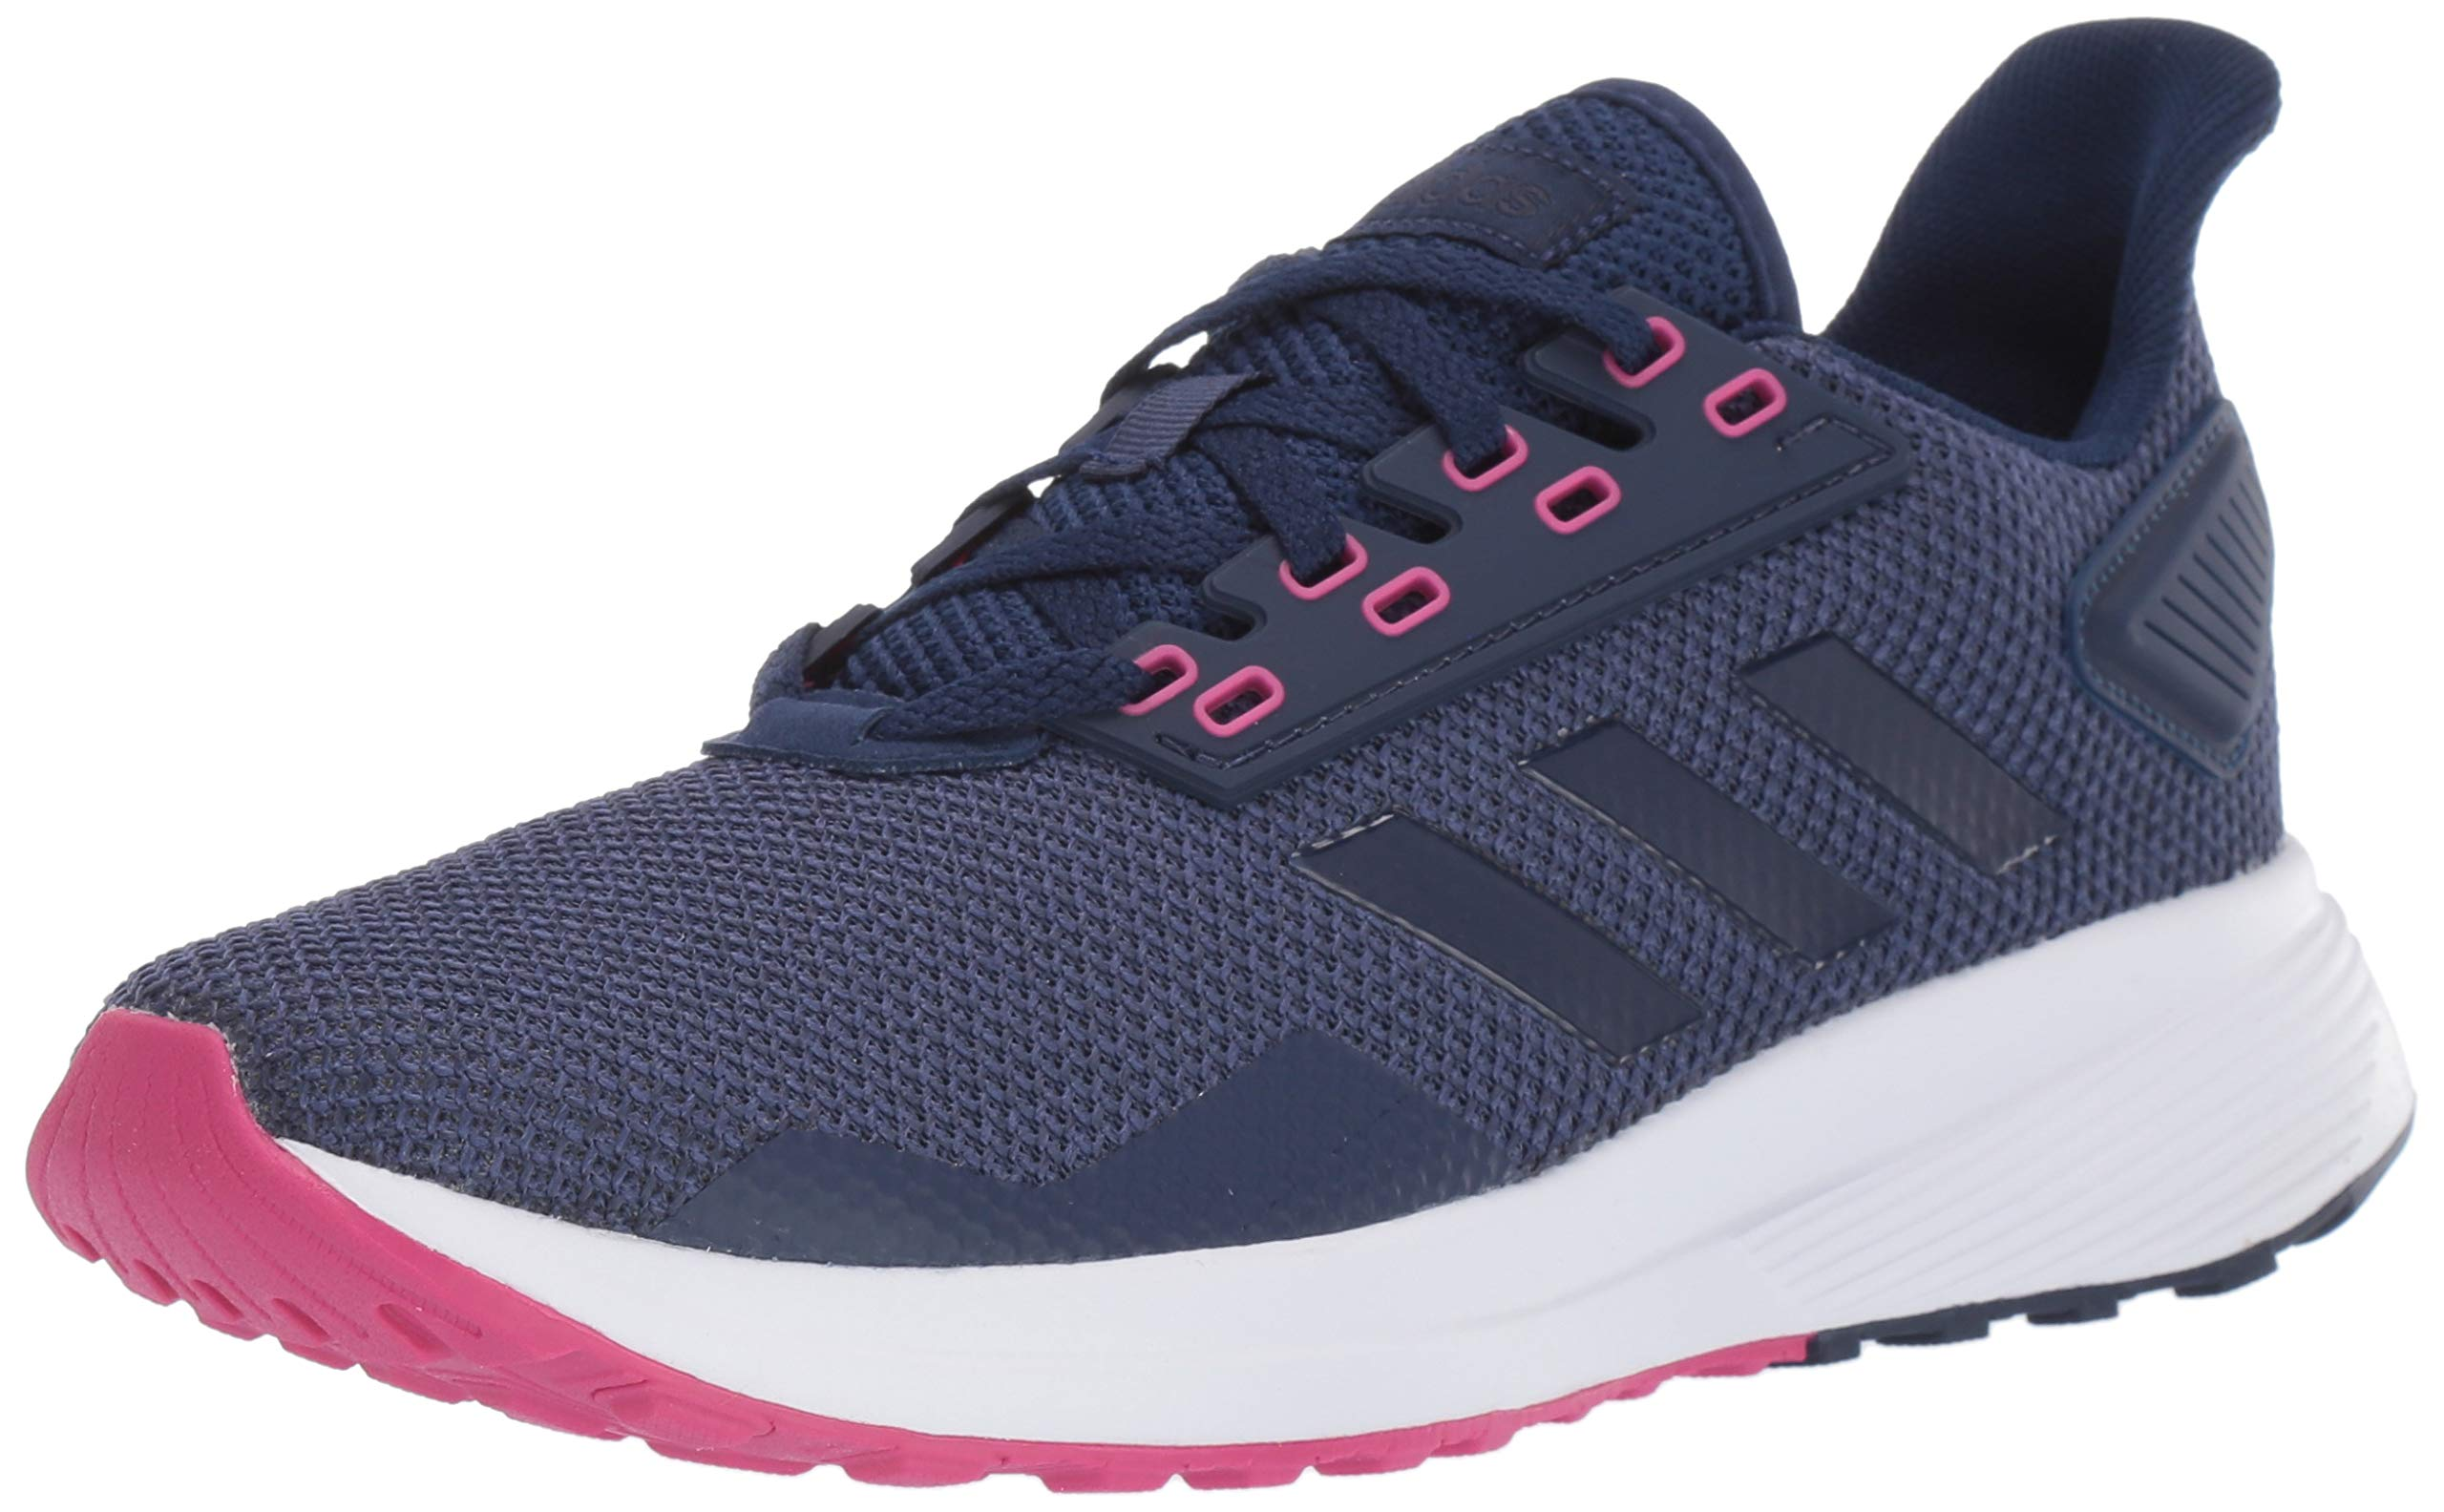 adidas Women's Duramo 9 Running Shoe, Dark Trace Blue, 6 M US by adidas